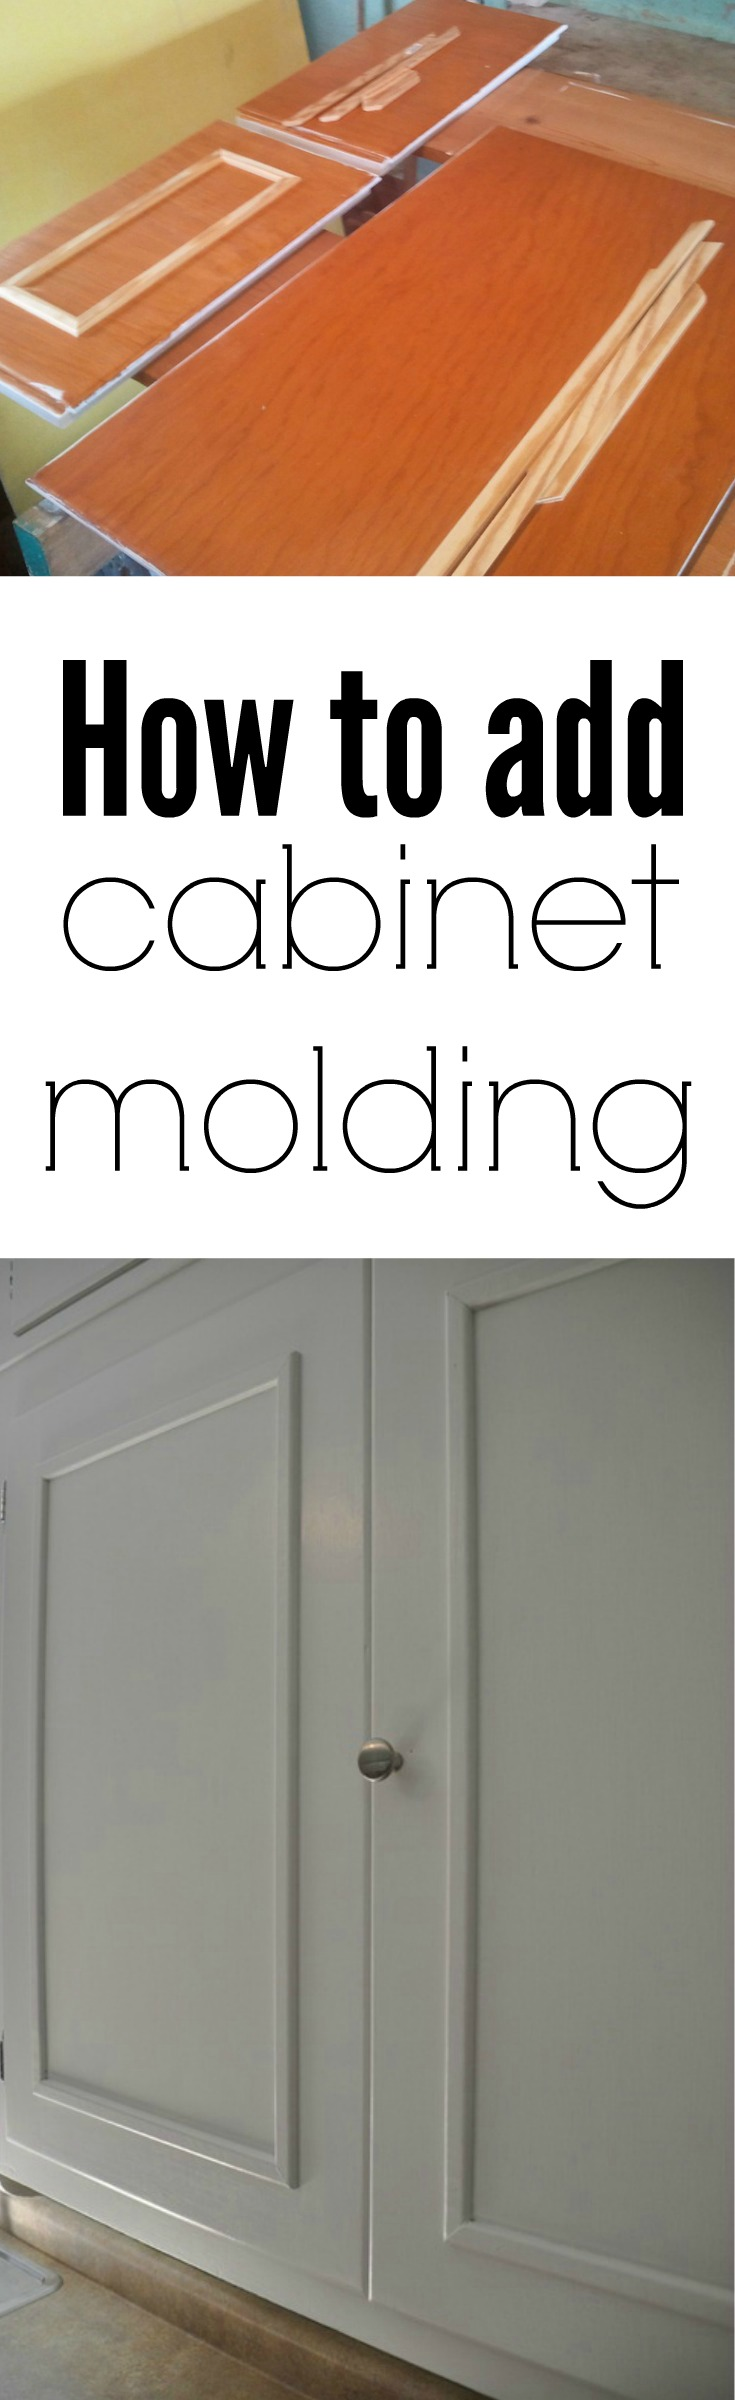 How to Add Cabinet Molding — Decor and the Dog